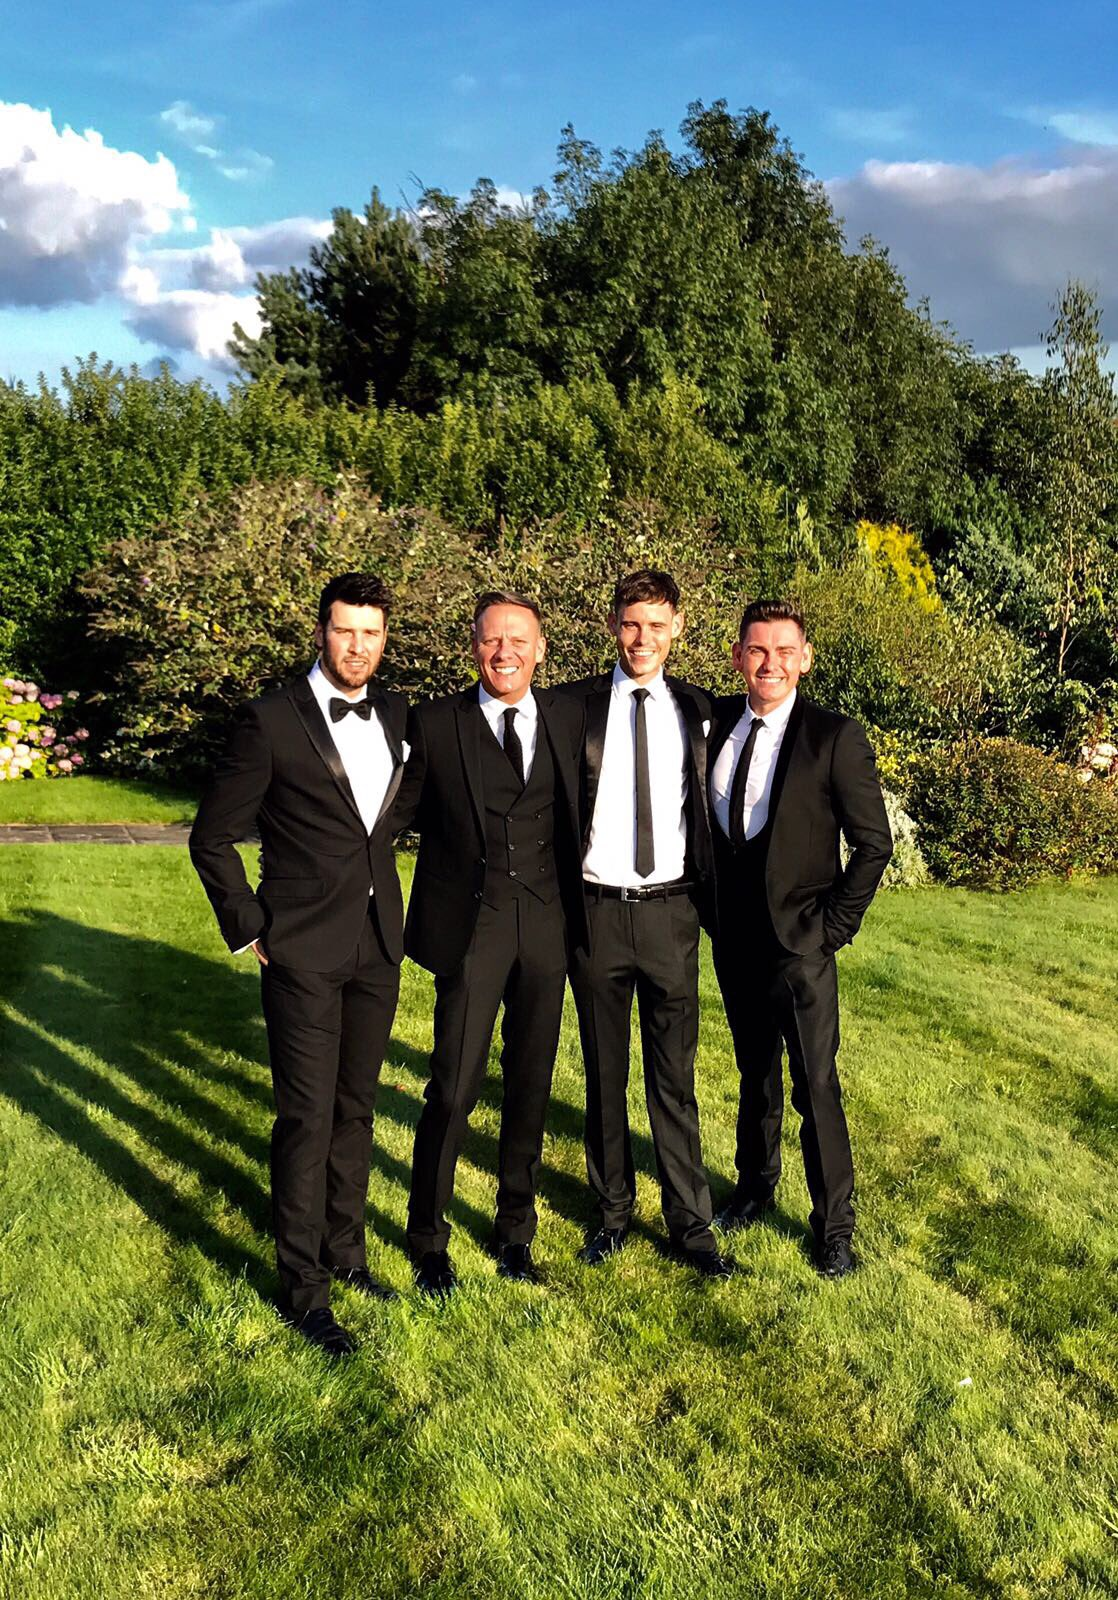 Suited and booted for @dawnward4 and @ashersnine's #cremeball. @ecclestonshire @rossaitchison91 @mickeyb5384 https://t.co/bxMGe4ou4W